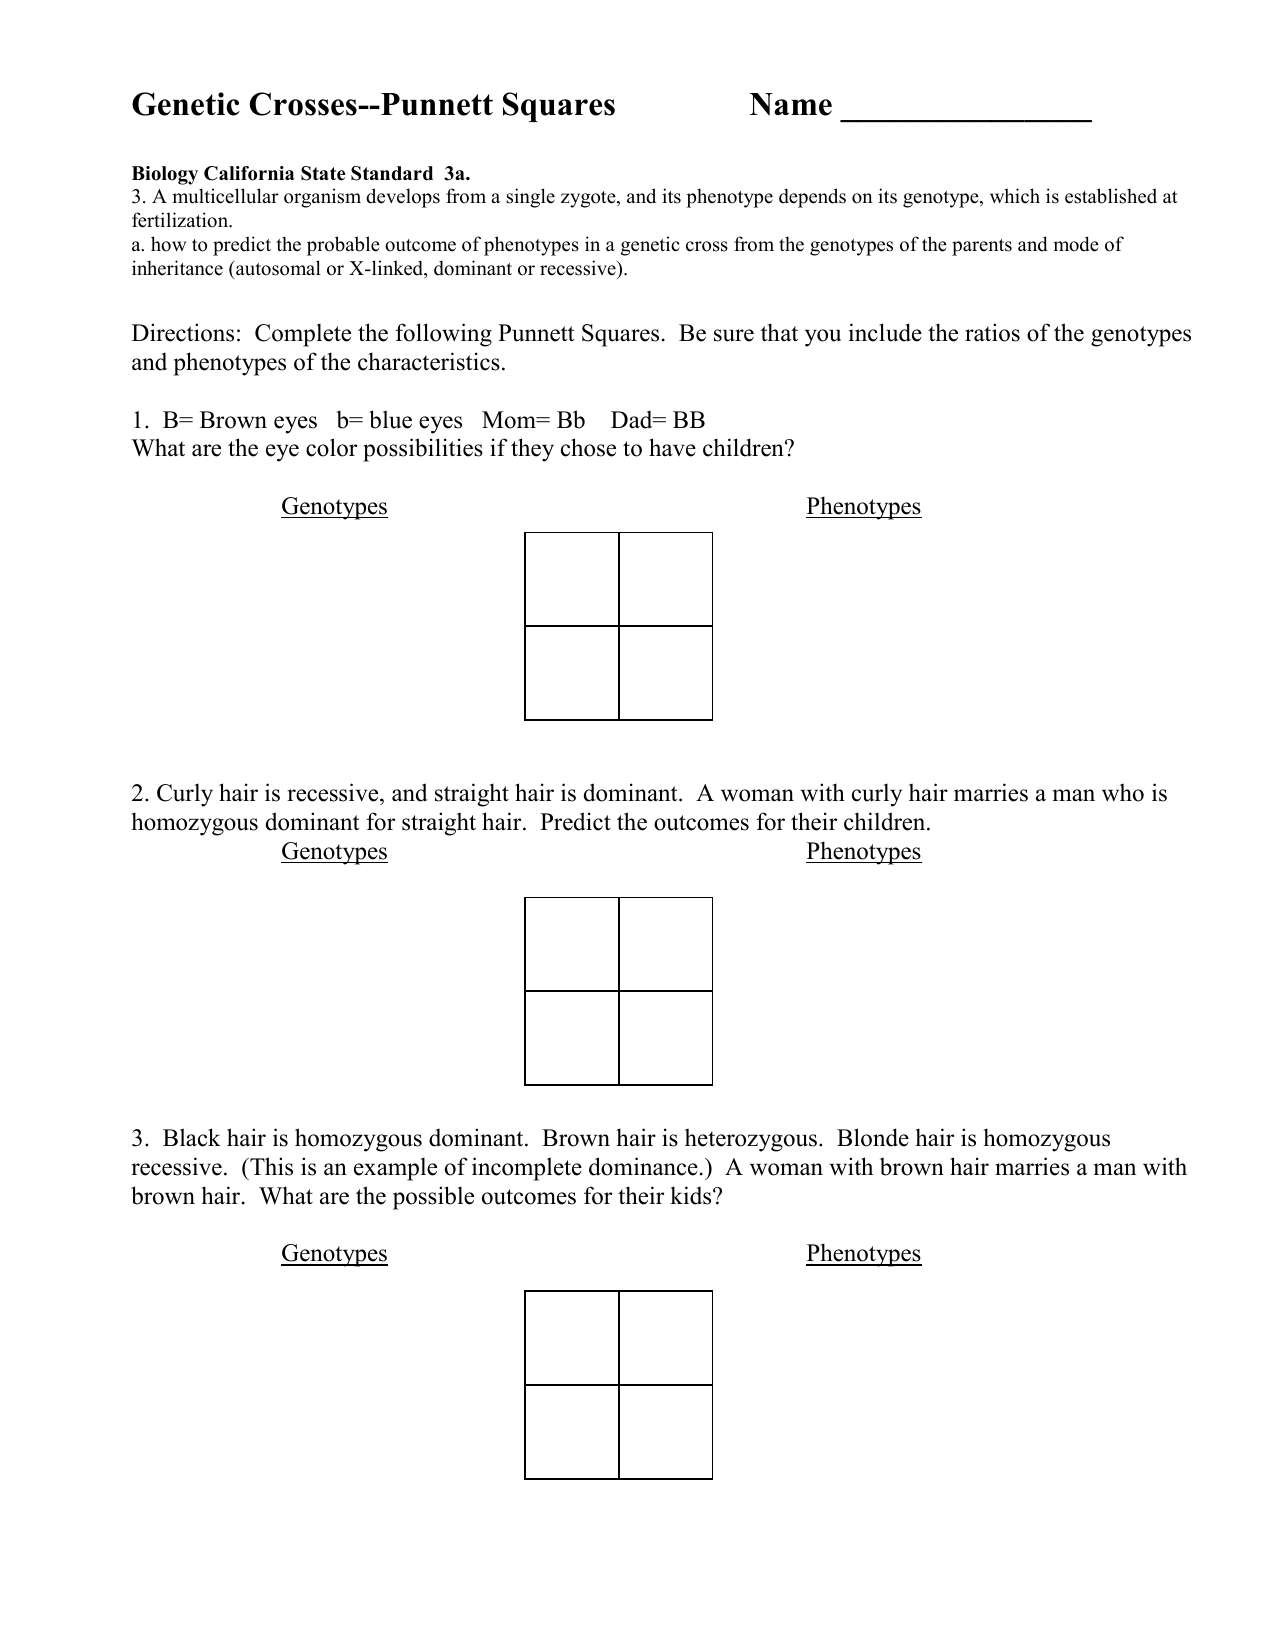 furthermore Pun t Square Worksheets   Page 3   Super Teacher Worksheets furthermore Pun t Square Worksheet 1 Answer Key   Briefencounters moreover Pun t Square Worksheet  Characteristics together with Ge ics Worksheet Answers   Mychaume as well Use your knowledge of ge ics to  plete this worksheet  Pages 1 likewise √ 15 Best Images of Pun t Square Worksheet Answer Key moreover  additionally Math Worksheets Ordering Numbers Worksheets Pun t Square further Ge ics Practice – Mixed Pun t Squares likewise ch 9 pun  square worksheet further Pun t Square Worksheet One Key   Briefencounters together with Quiz   Worksheet   Intermediate Inheritance   Study additionally Pun t Square Worksheet   FREE Printable Worksheets in addition Pea Plant Pun  Squares  5 18   YouTube besides Pun t Square Answer KEY. on punnett square worksheet 1 answers